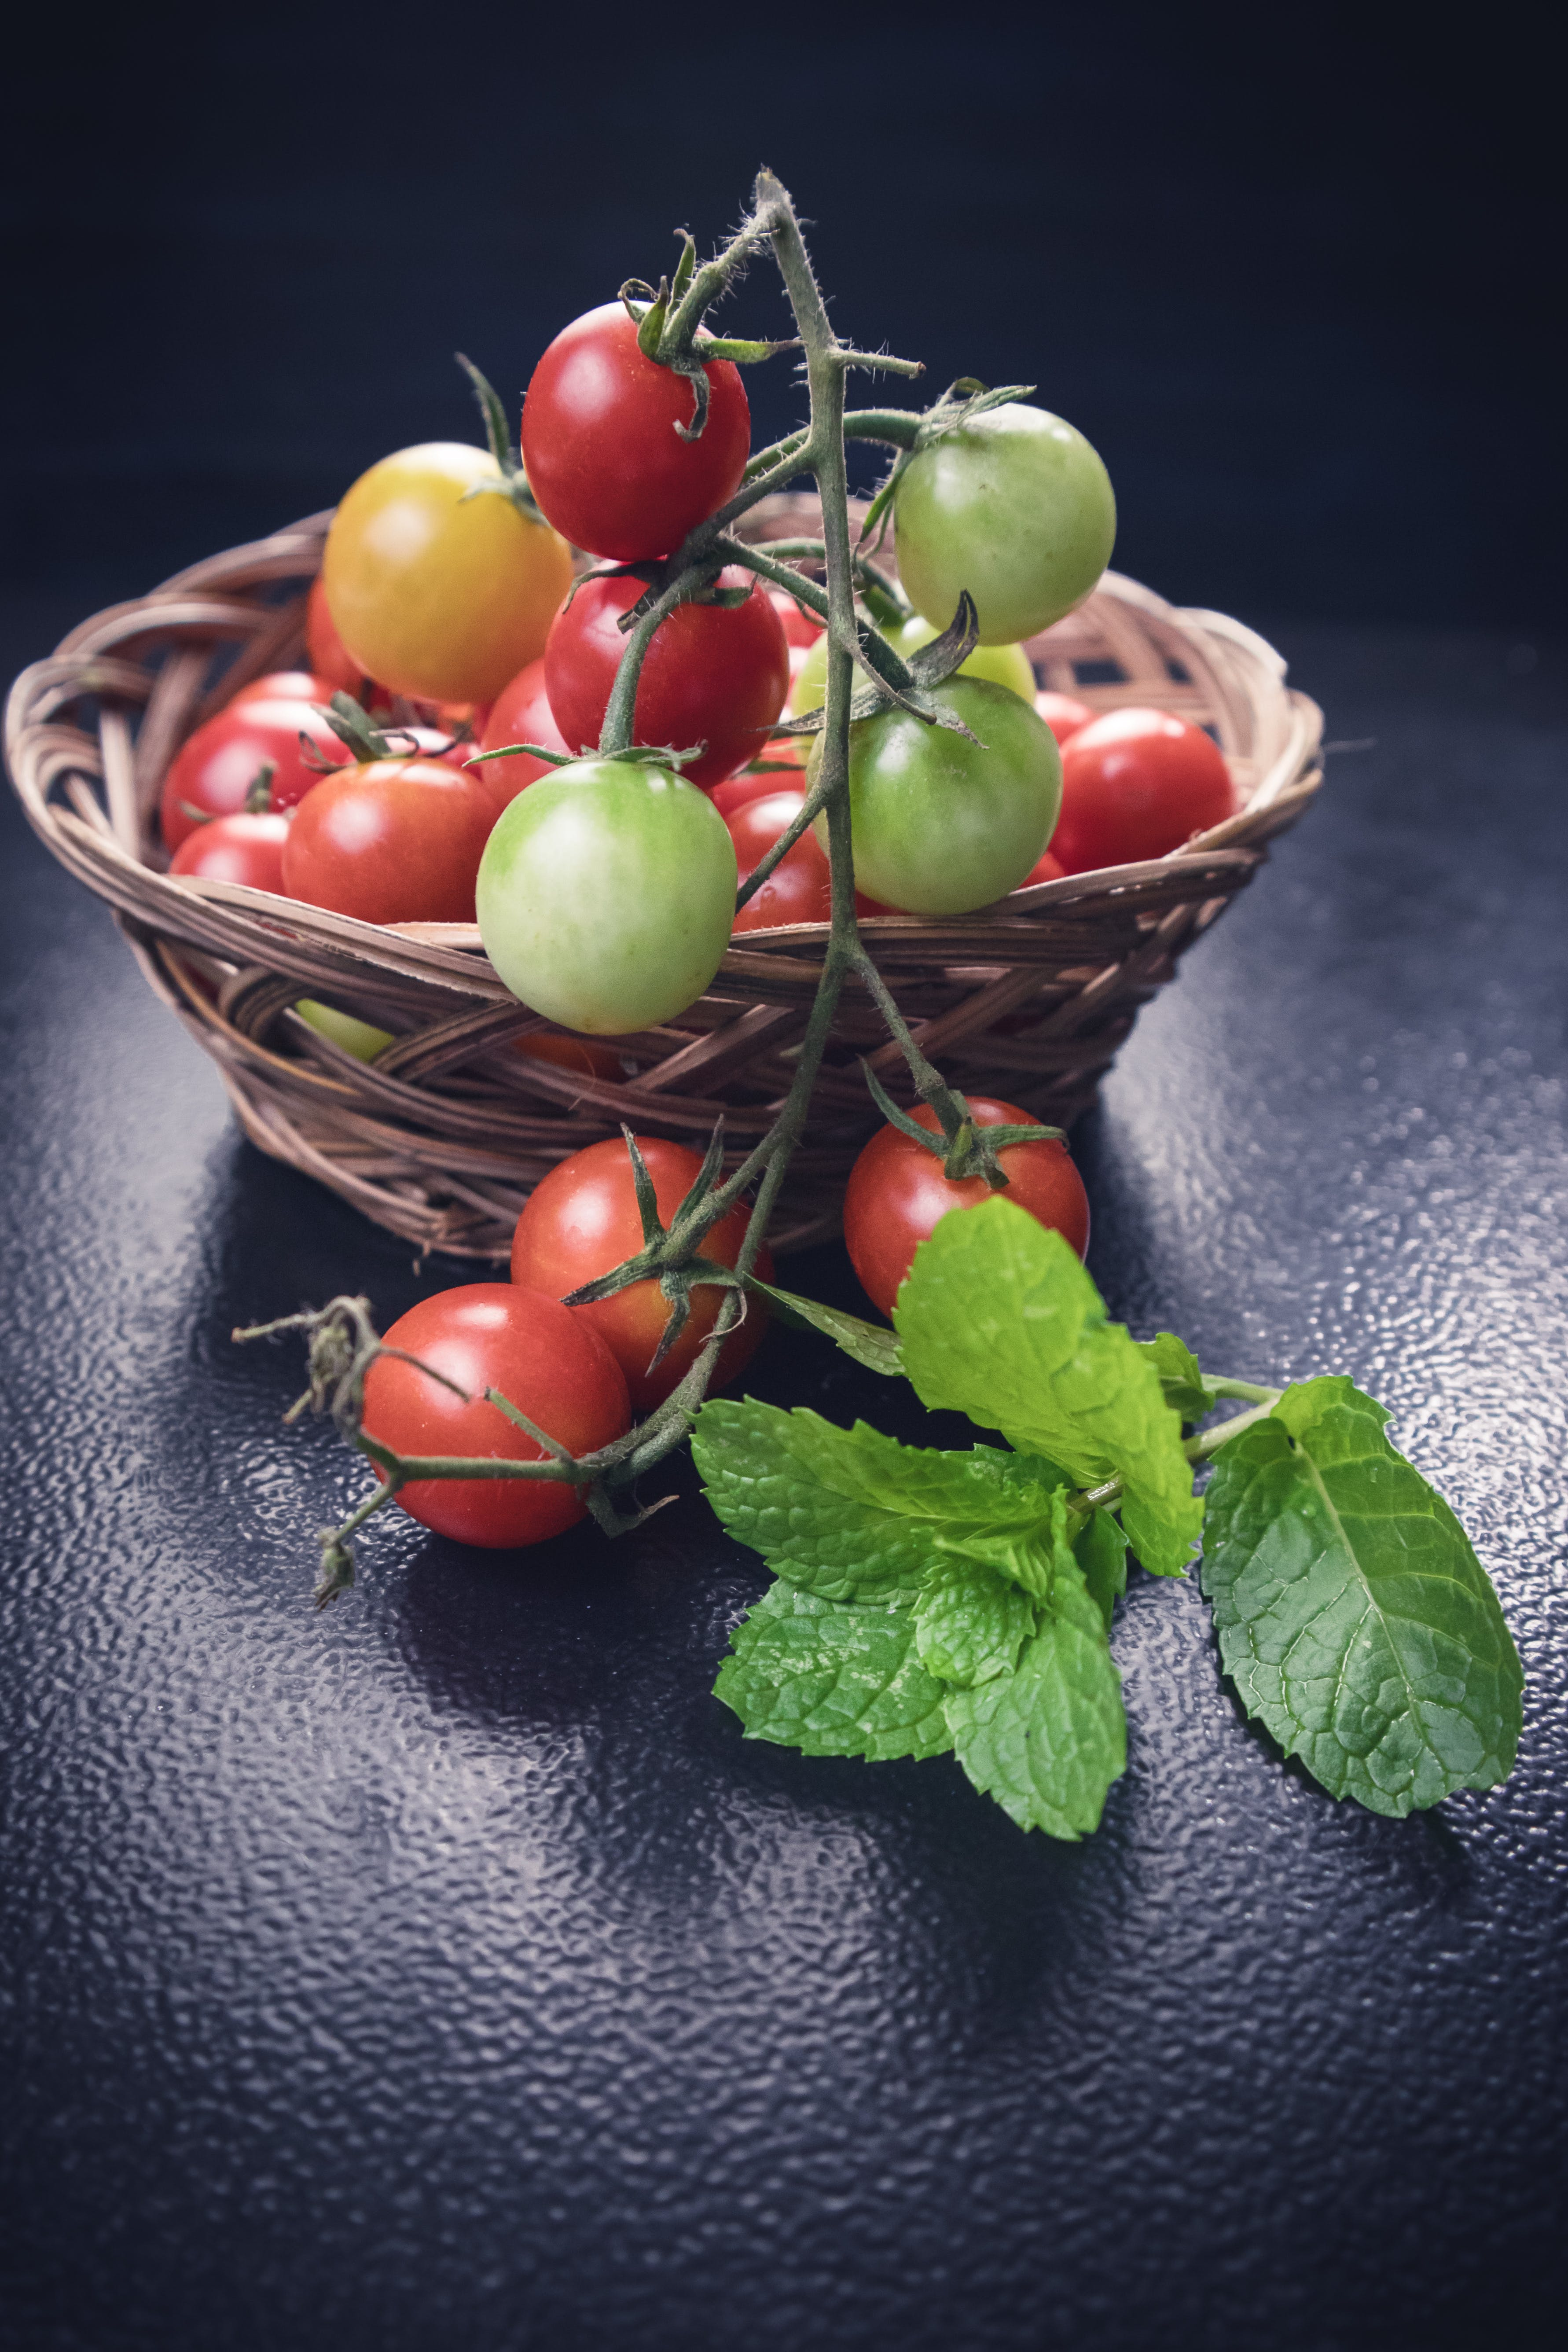 Photo of Tomatoes on Woven Basket